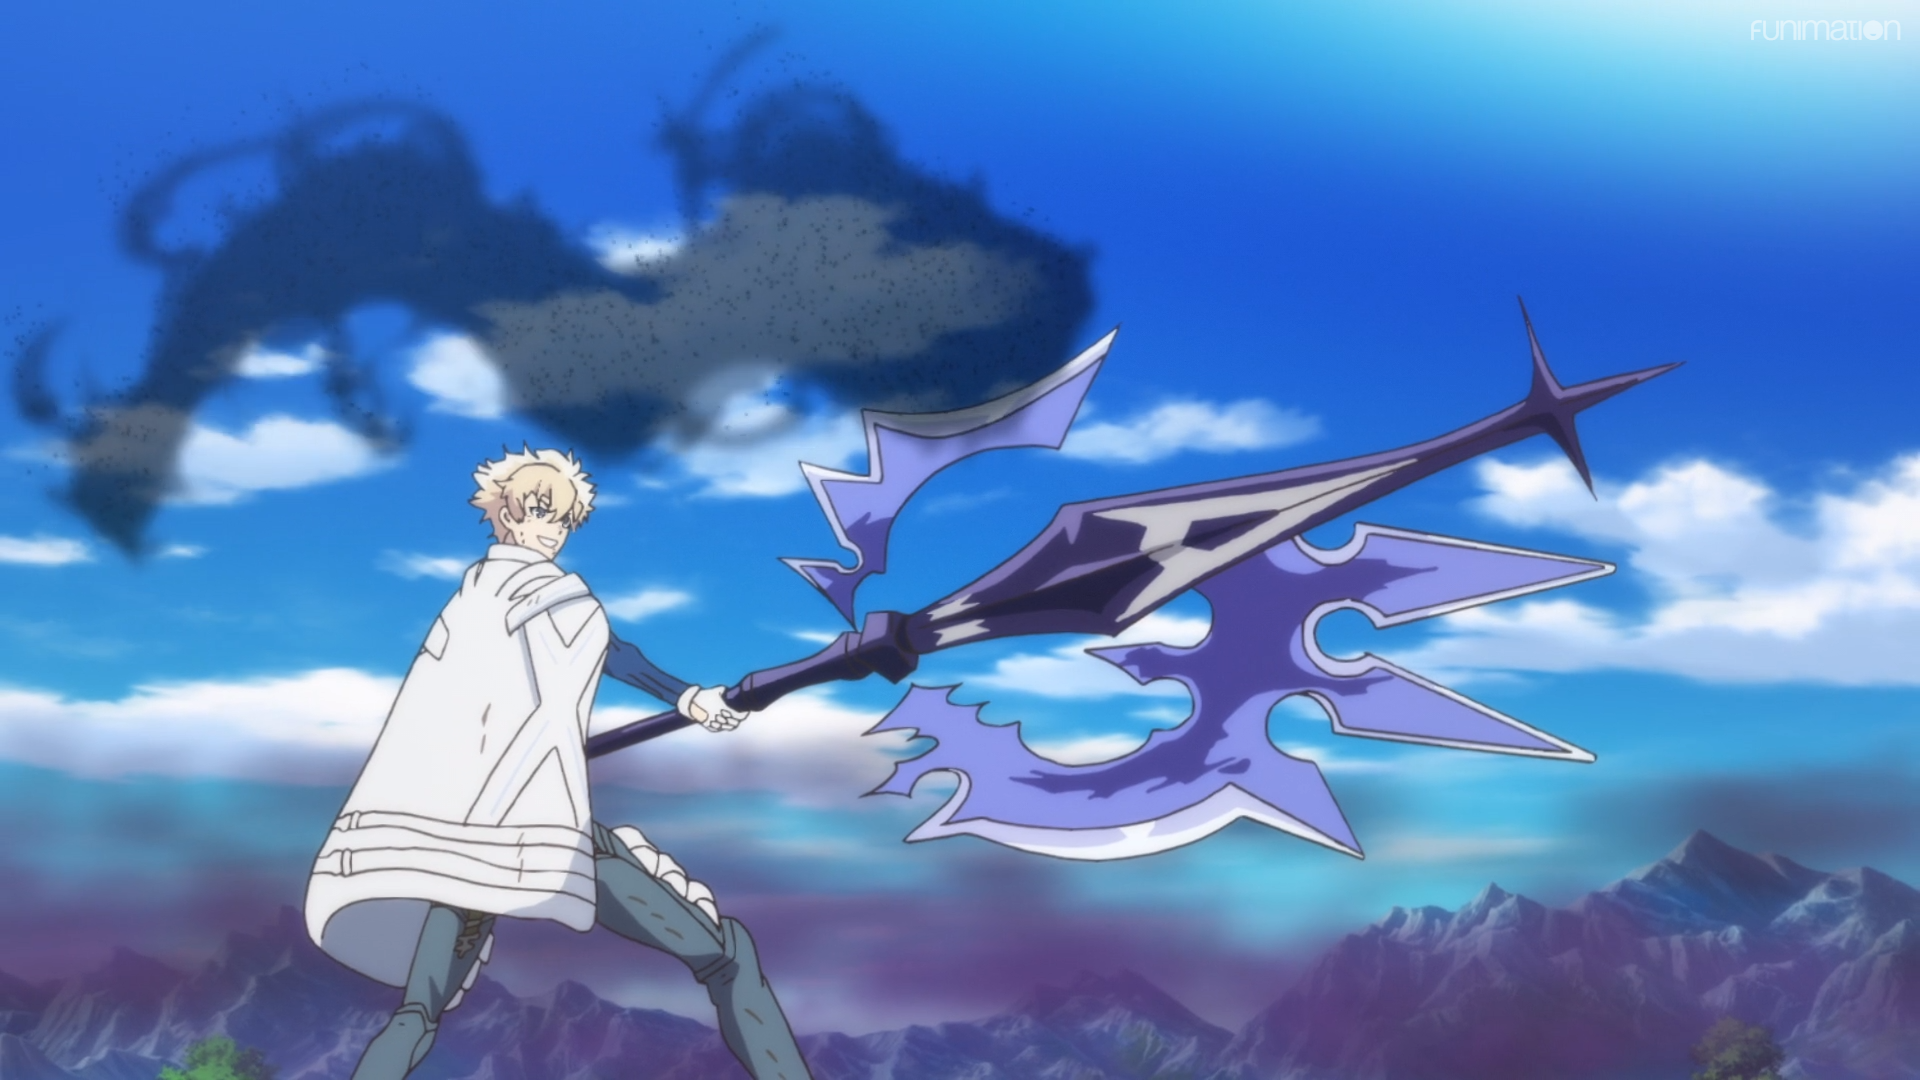 Infinite Dendrogram / Episode 4 / Ray wielding a new form of nemesis